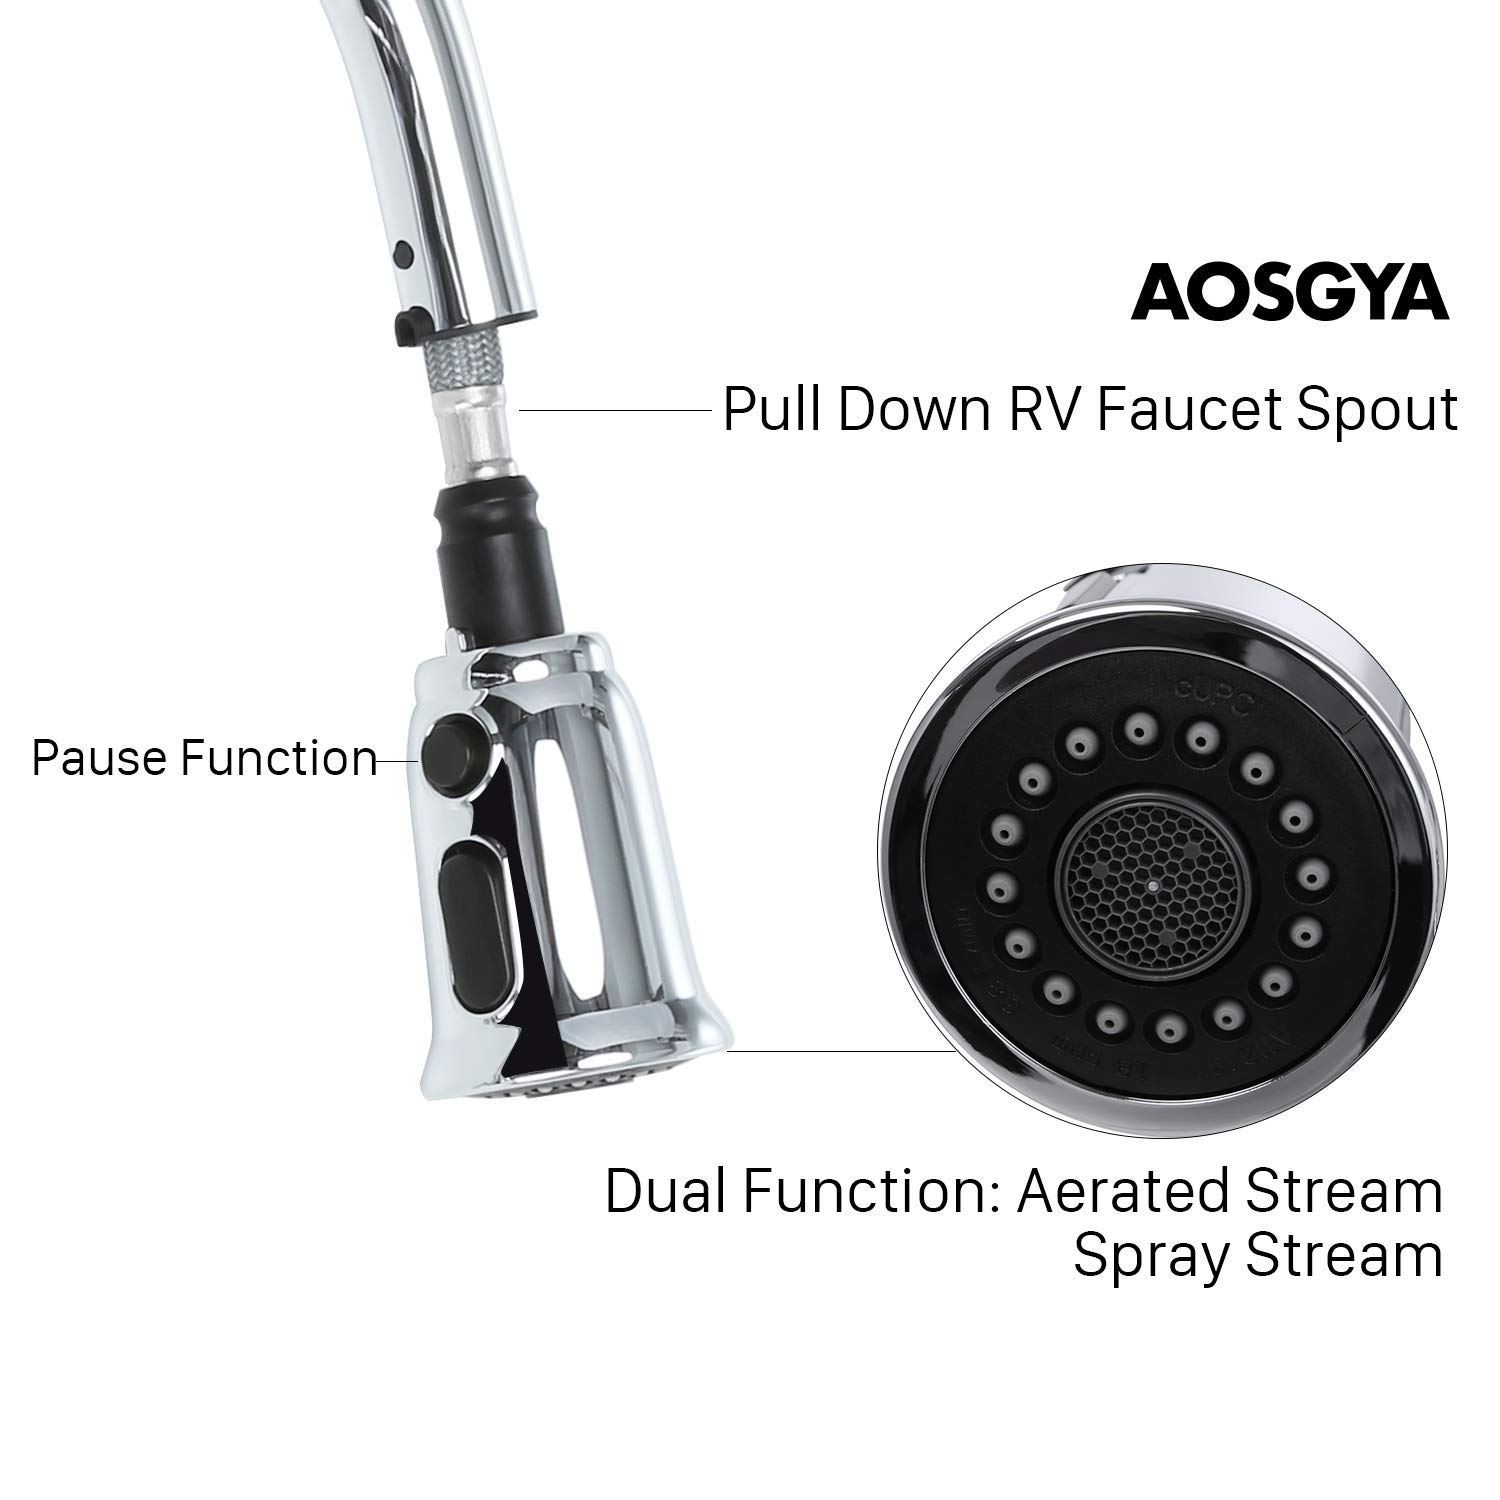 AOSGYA Pull Down RV Kitchen Faucet Non-Metallic RV Kitchen Sink Faucets with Pause Function Spayer for Recreational Vehicle Wheel Travel Trailer Motor Home Camper Towable 5th Fifth Boats